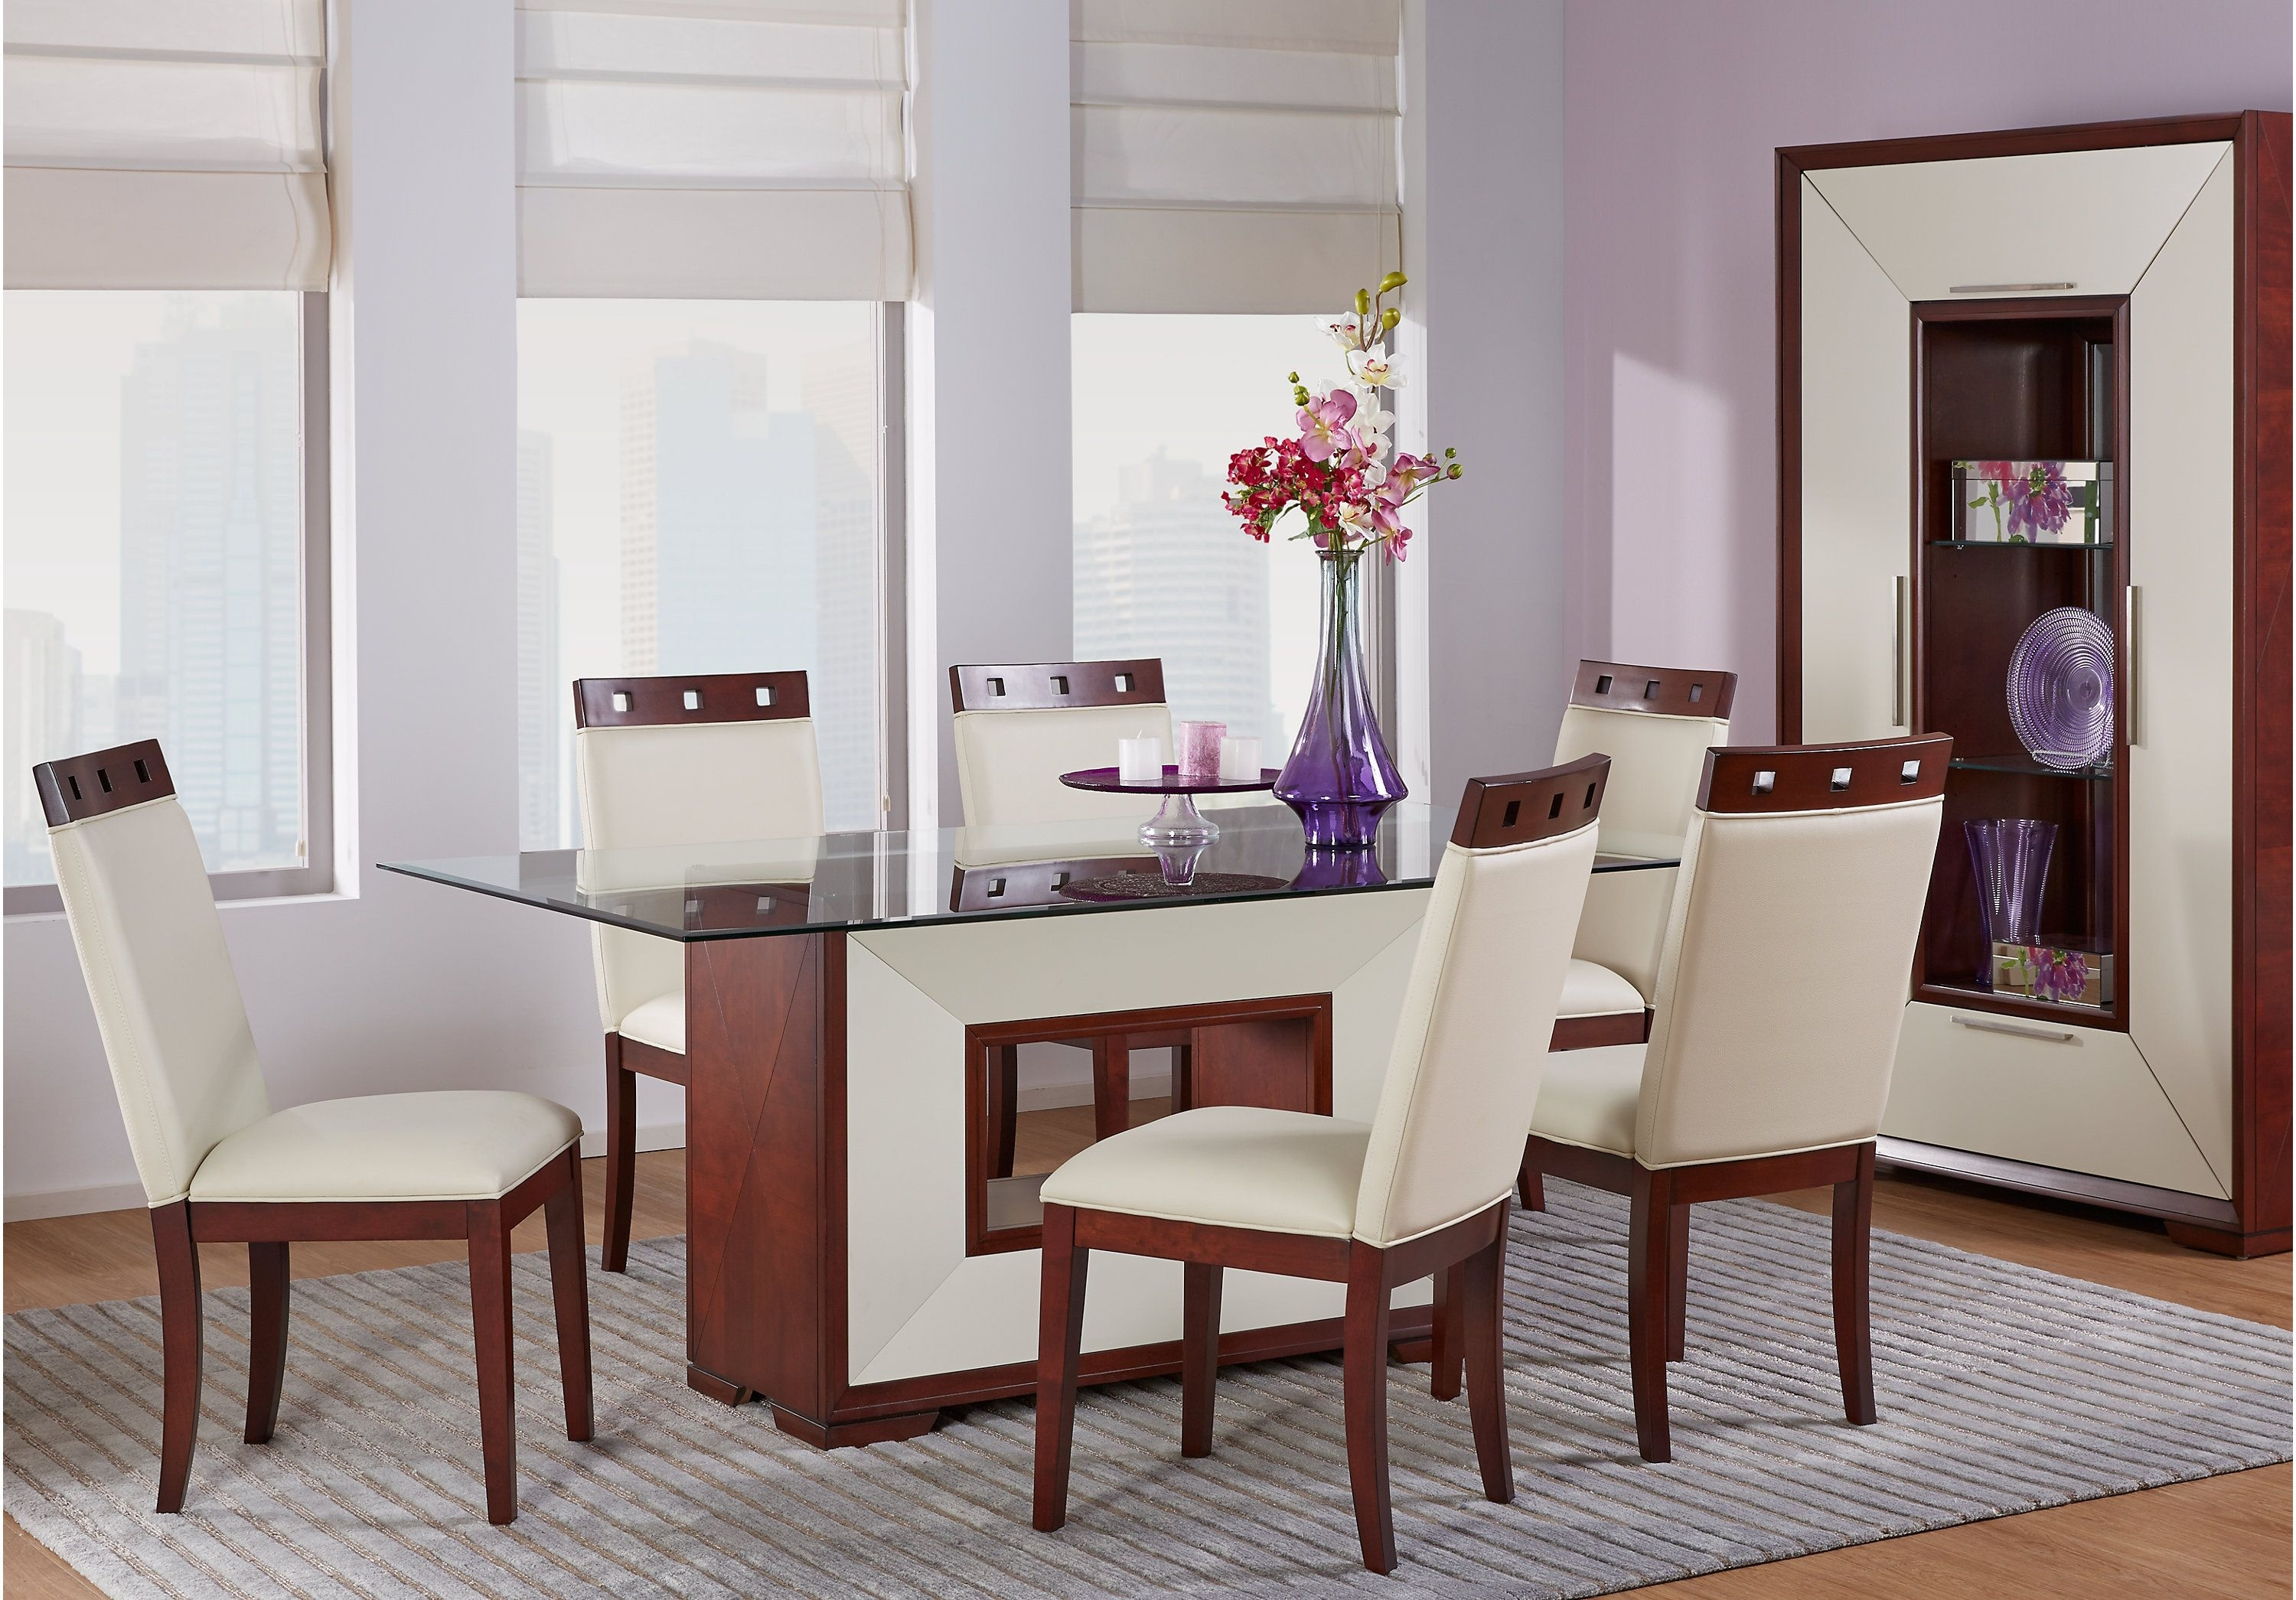 Sofia Vergara Savona Ivory 5 Pc Rectangle Dining Room With Glass Top In Most Recently Released Caira Black 5 Piece Round Dining Sets With Diamond Back Side Chairs (View 16 of 20)